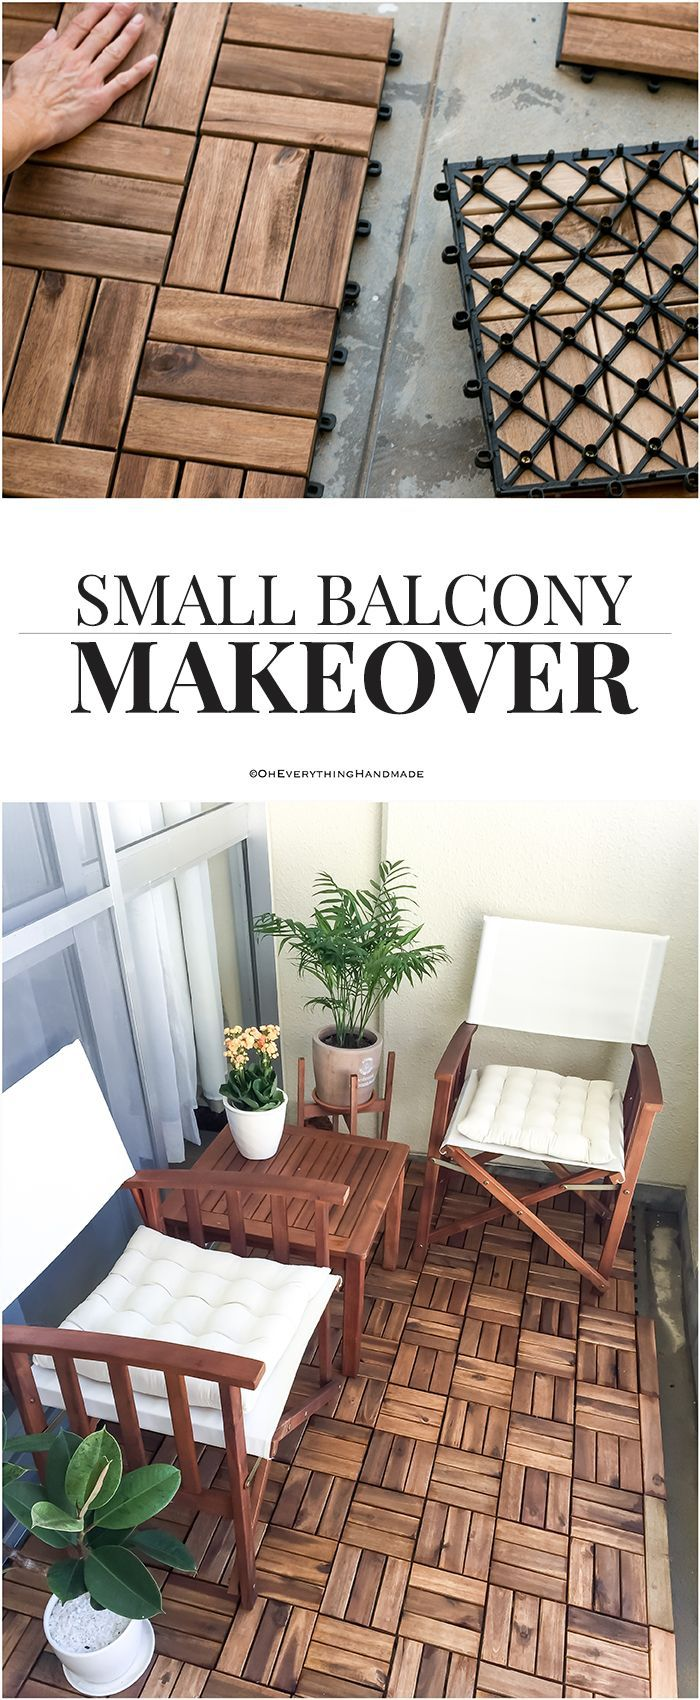 Small Balcony Makeover  DIY Crafts and Projects Ideas  Handmade